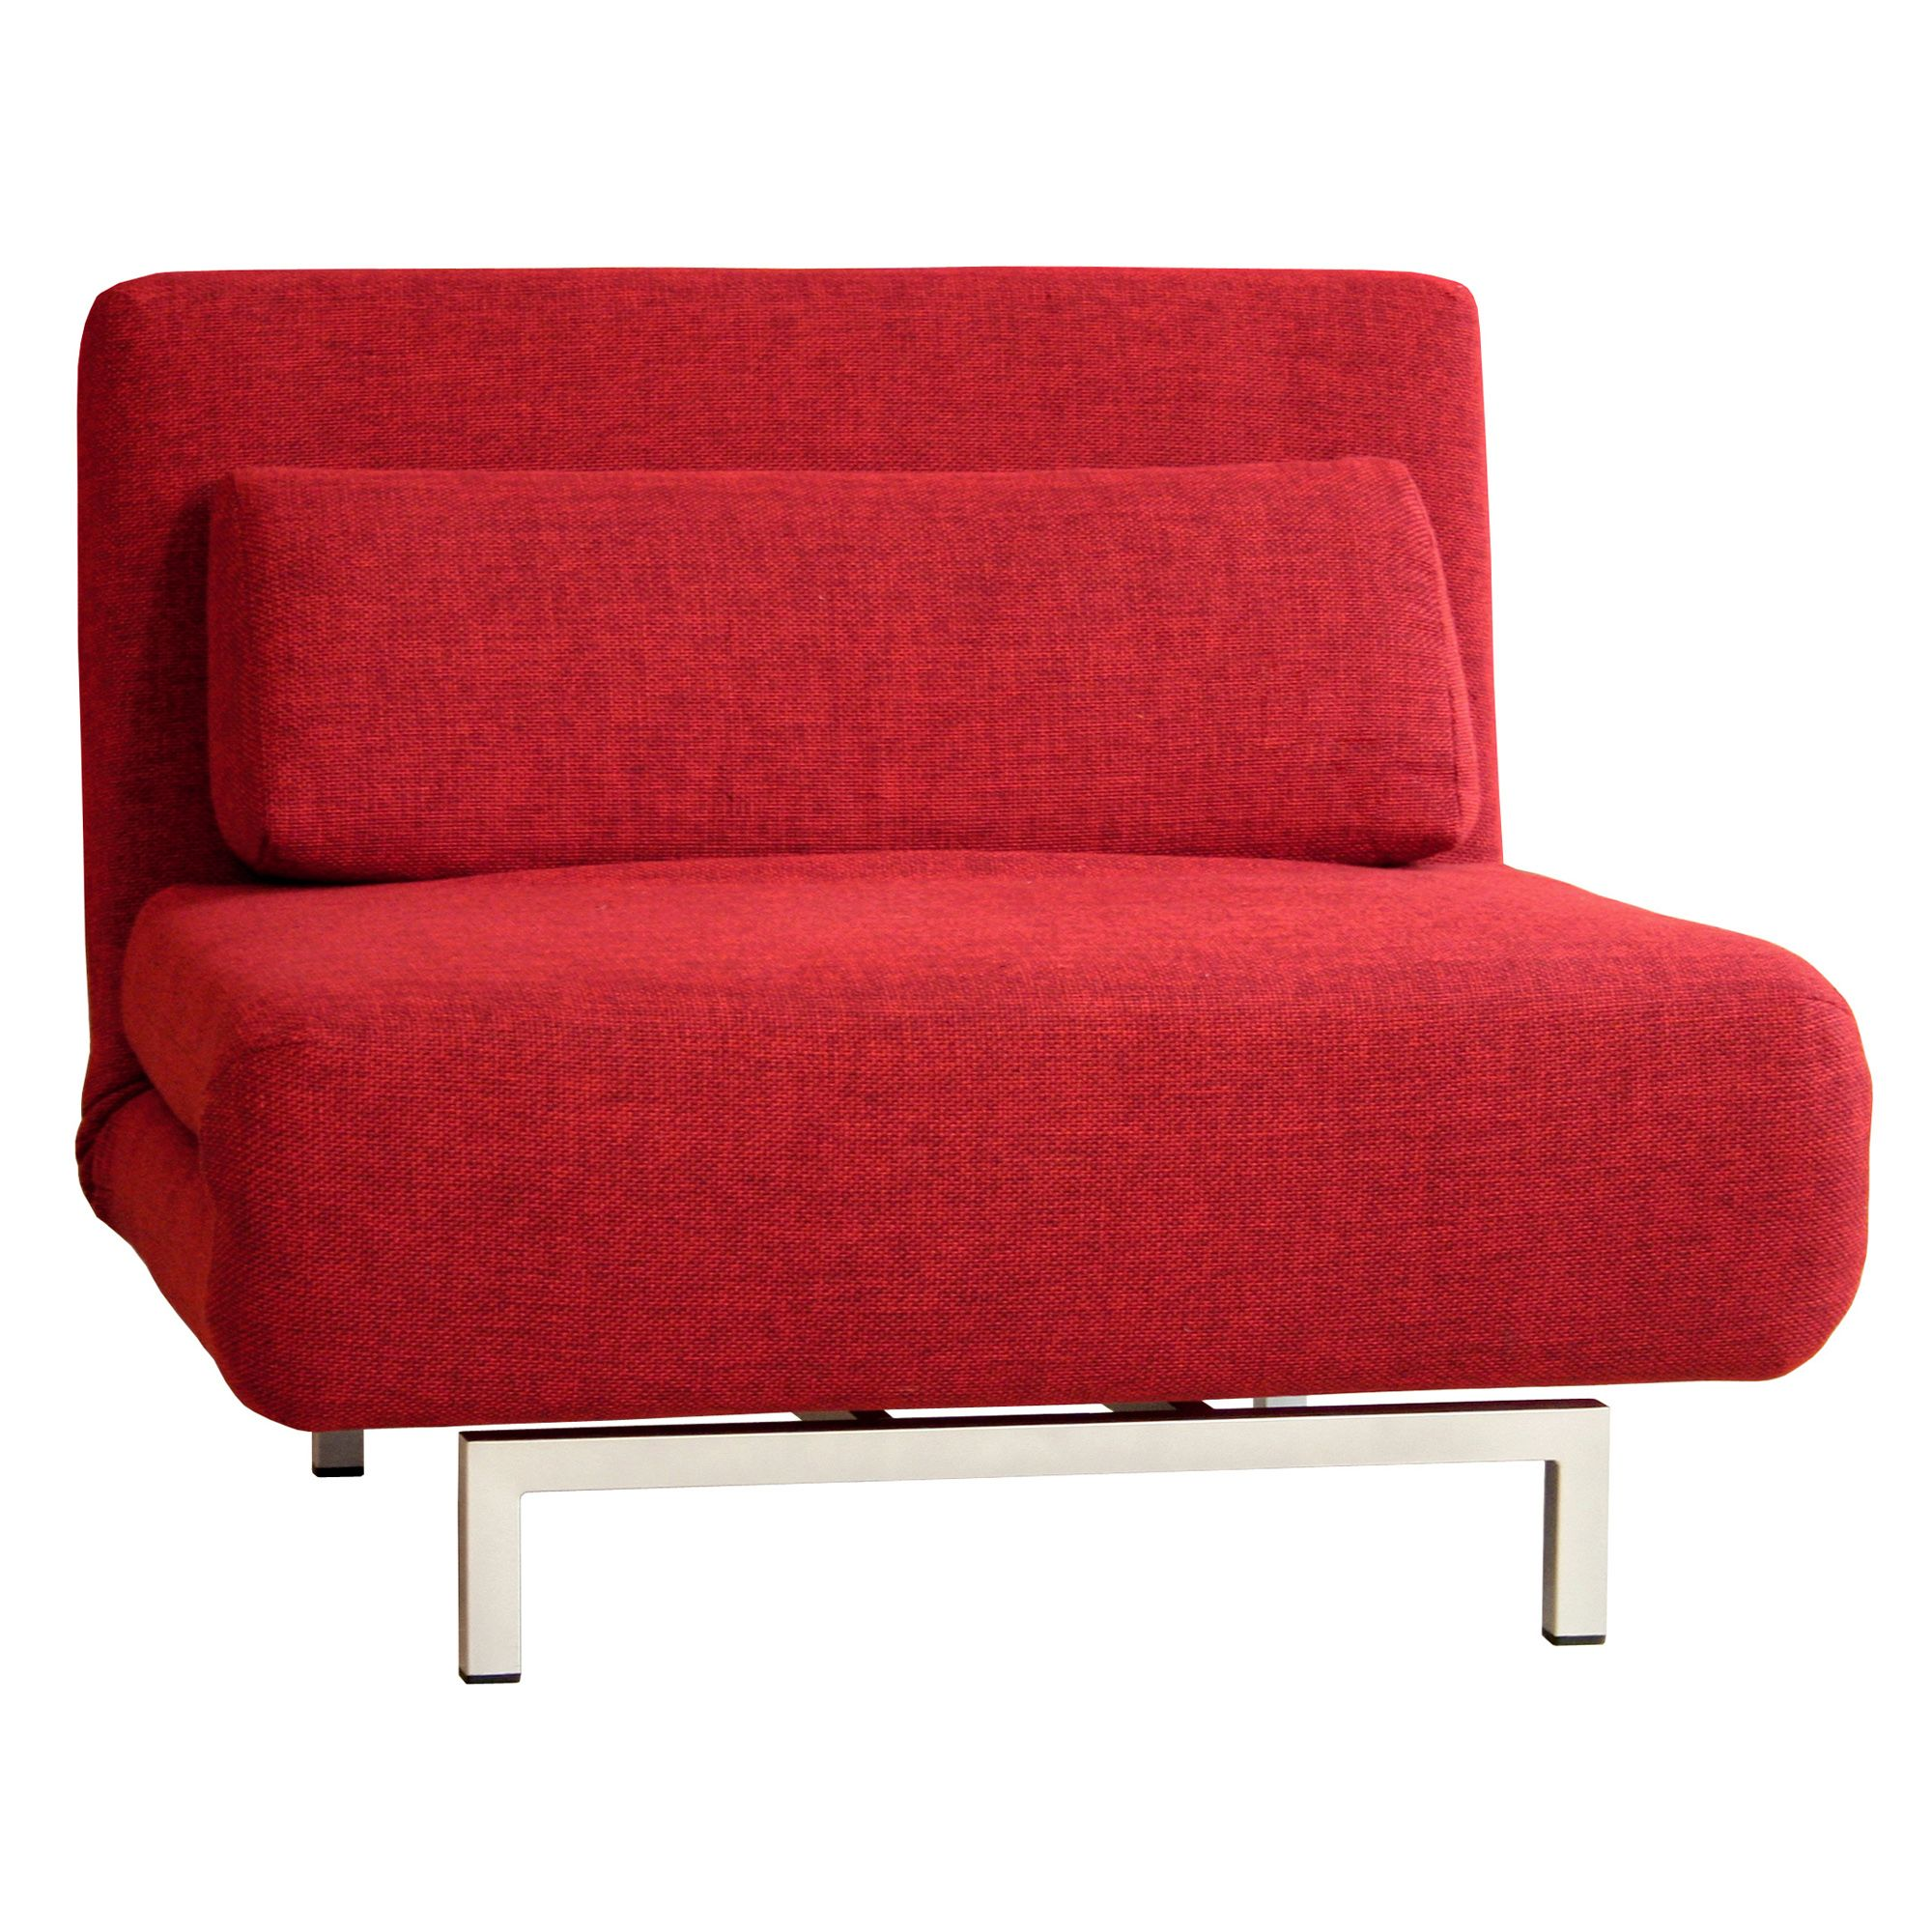 Baxton Studio 30 H Convertible Chair Day Bed with Accent Pillow - Red